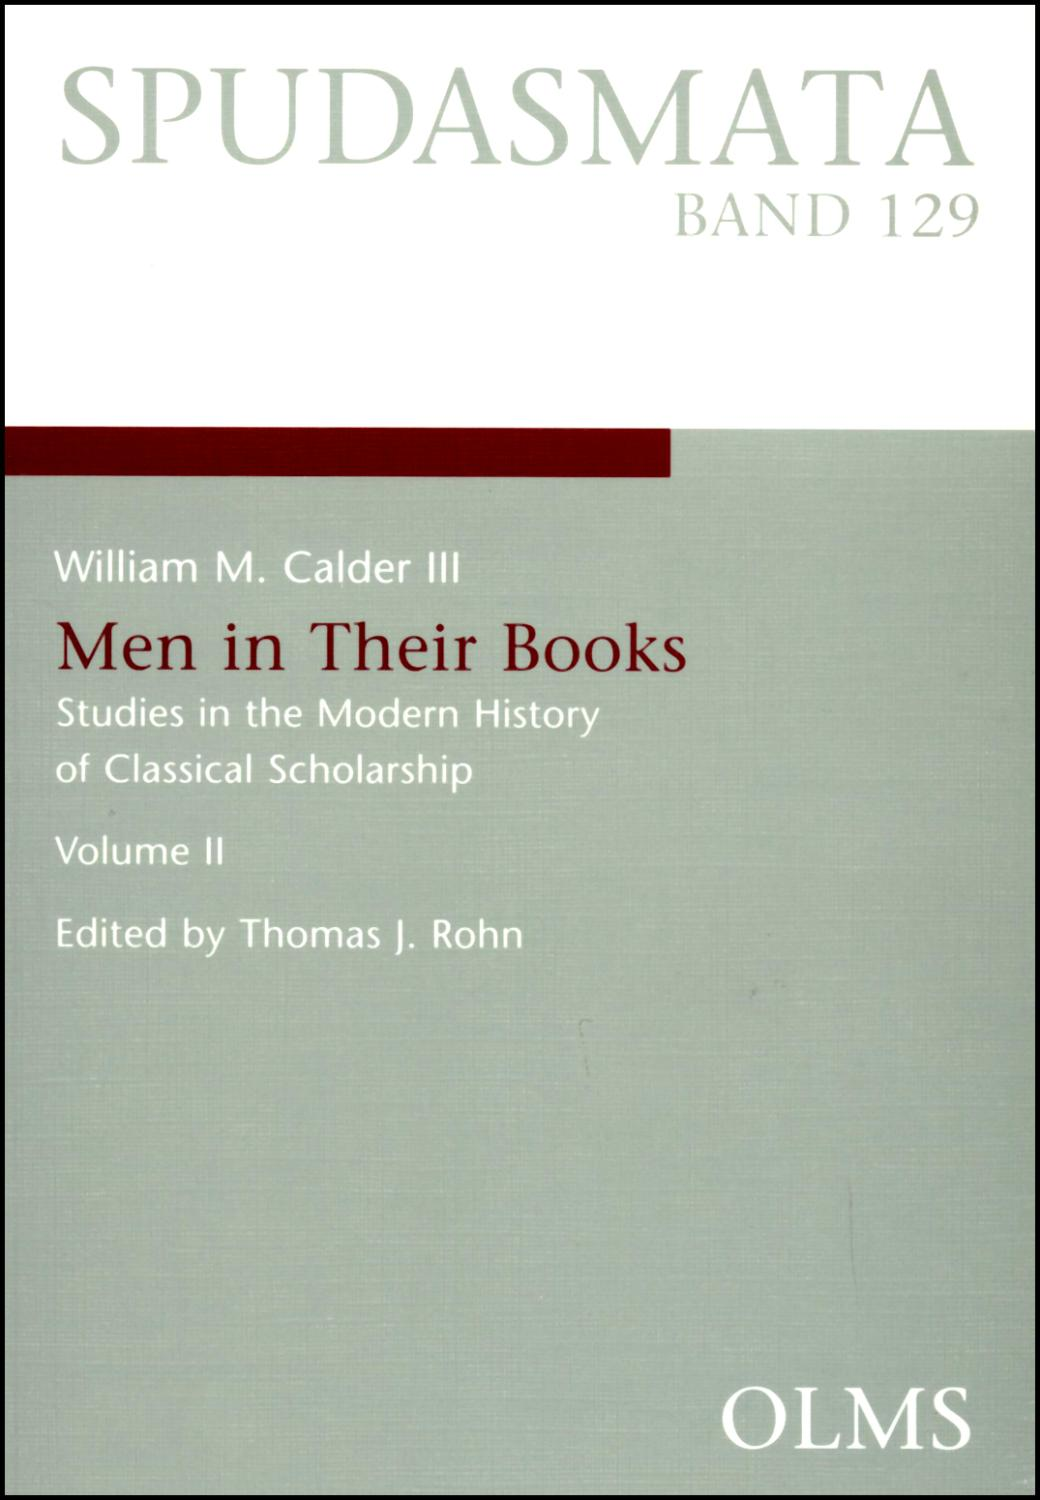 Men in Their Books II, Studies in the Modern History of Classical Scholarship. Edited by Thomas J. Rohn. - Calder III., William M.